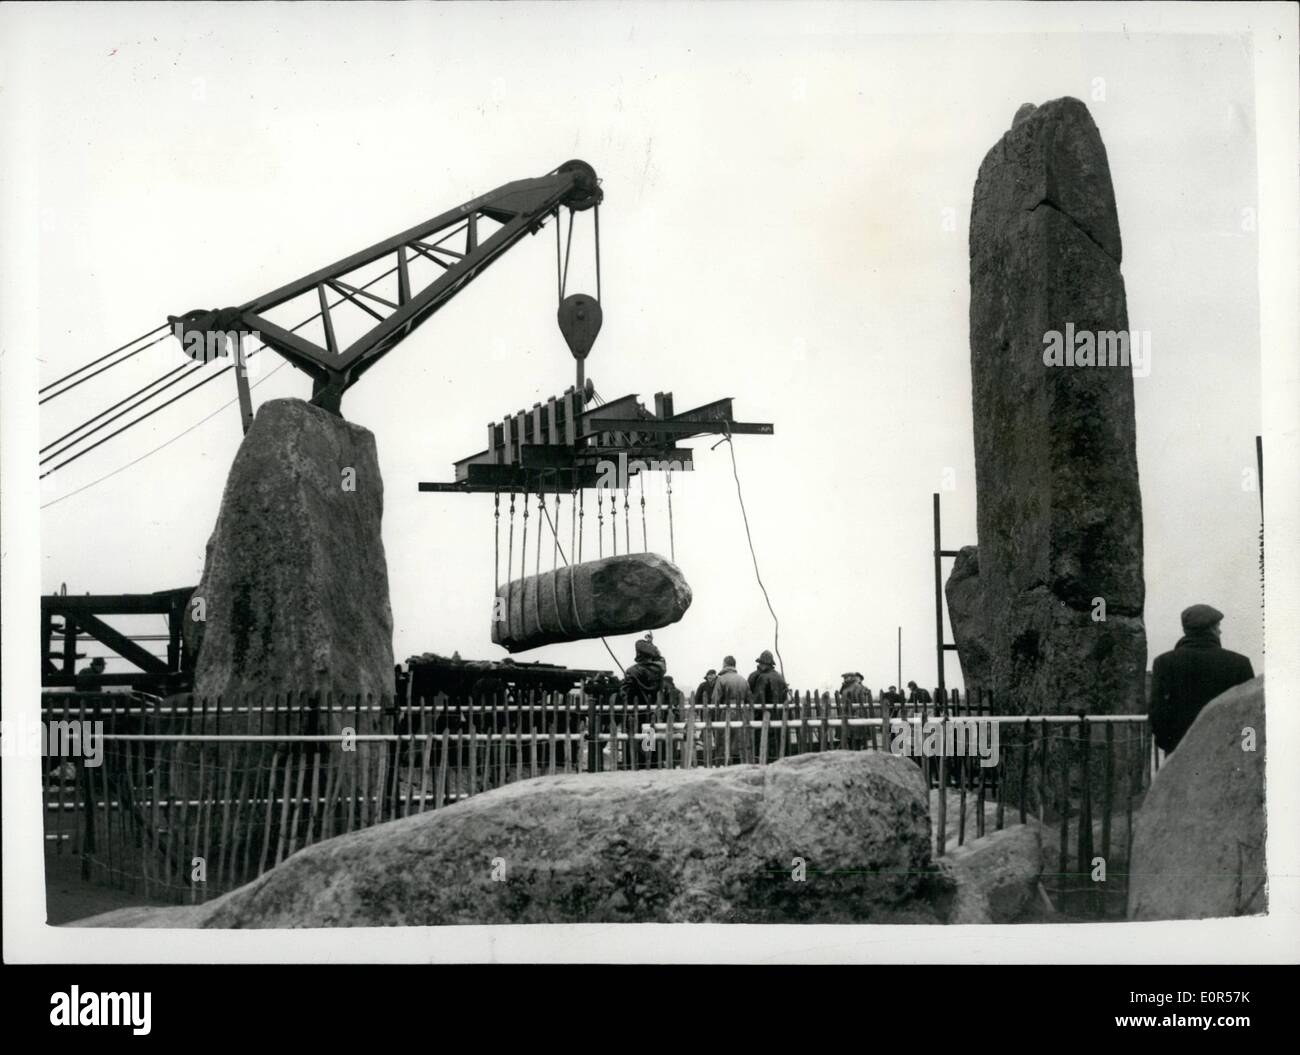 Mar. 03, 1958 - Restoration of Stonehenge continues. Lifting sixteen ton Lintel.: Work is continuing on the restoration of Stonehenge - by the Ministry of works at a cost of ?8,500. A sixty ton crane was in use today lifting the 16 ton lintel of the fallen trilithon. The two huge uprights and the lintel have lain untouched since the end of the 18th century when amateur excavators caused their downfall. In addition - three stones of the outer circle are being replaced as many of the stones that were believed to have been knocked down by the Romans are being left as they were - Stock Image